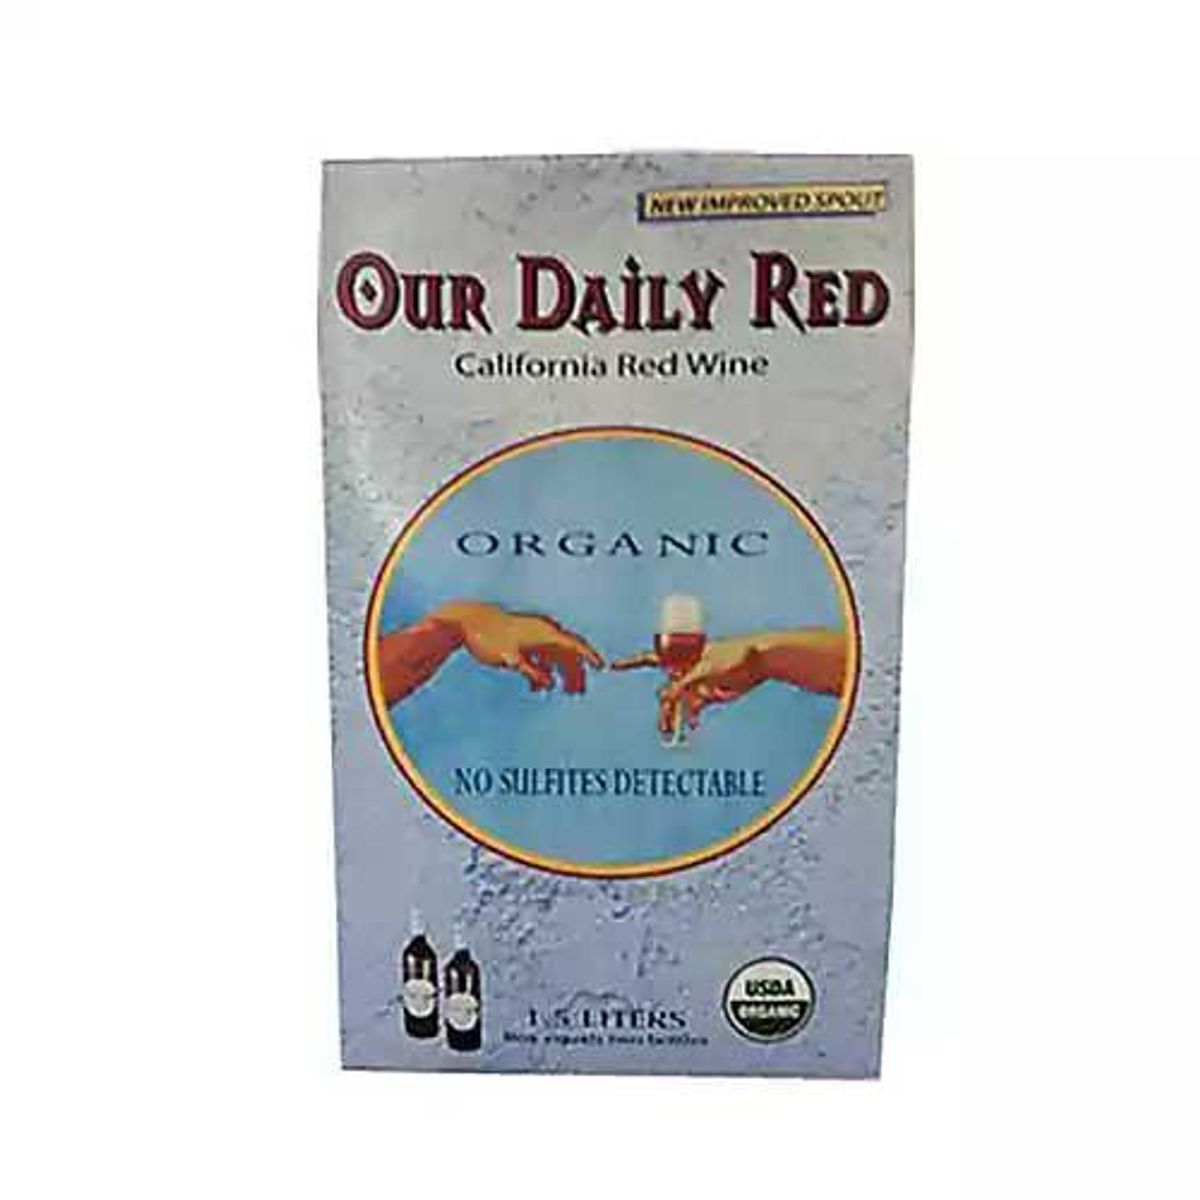 our daily red california red wine